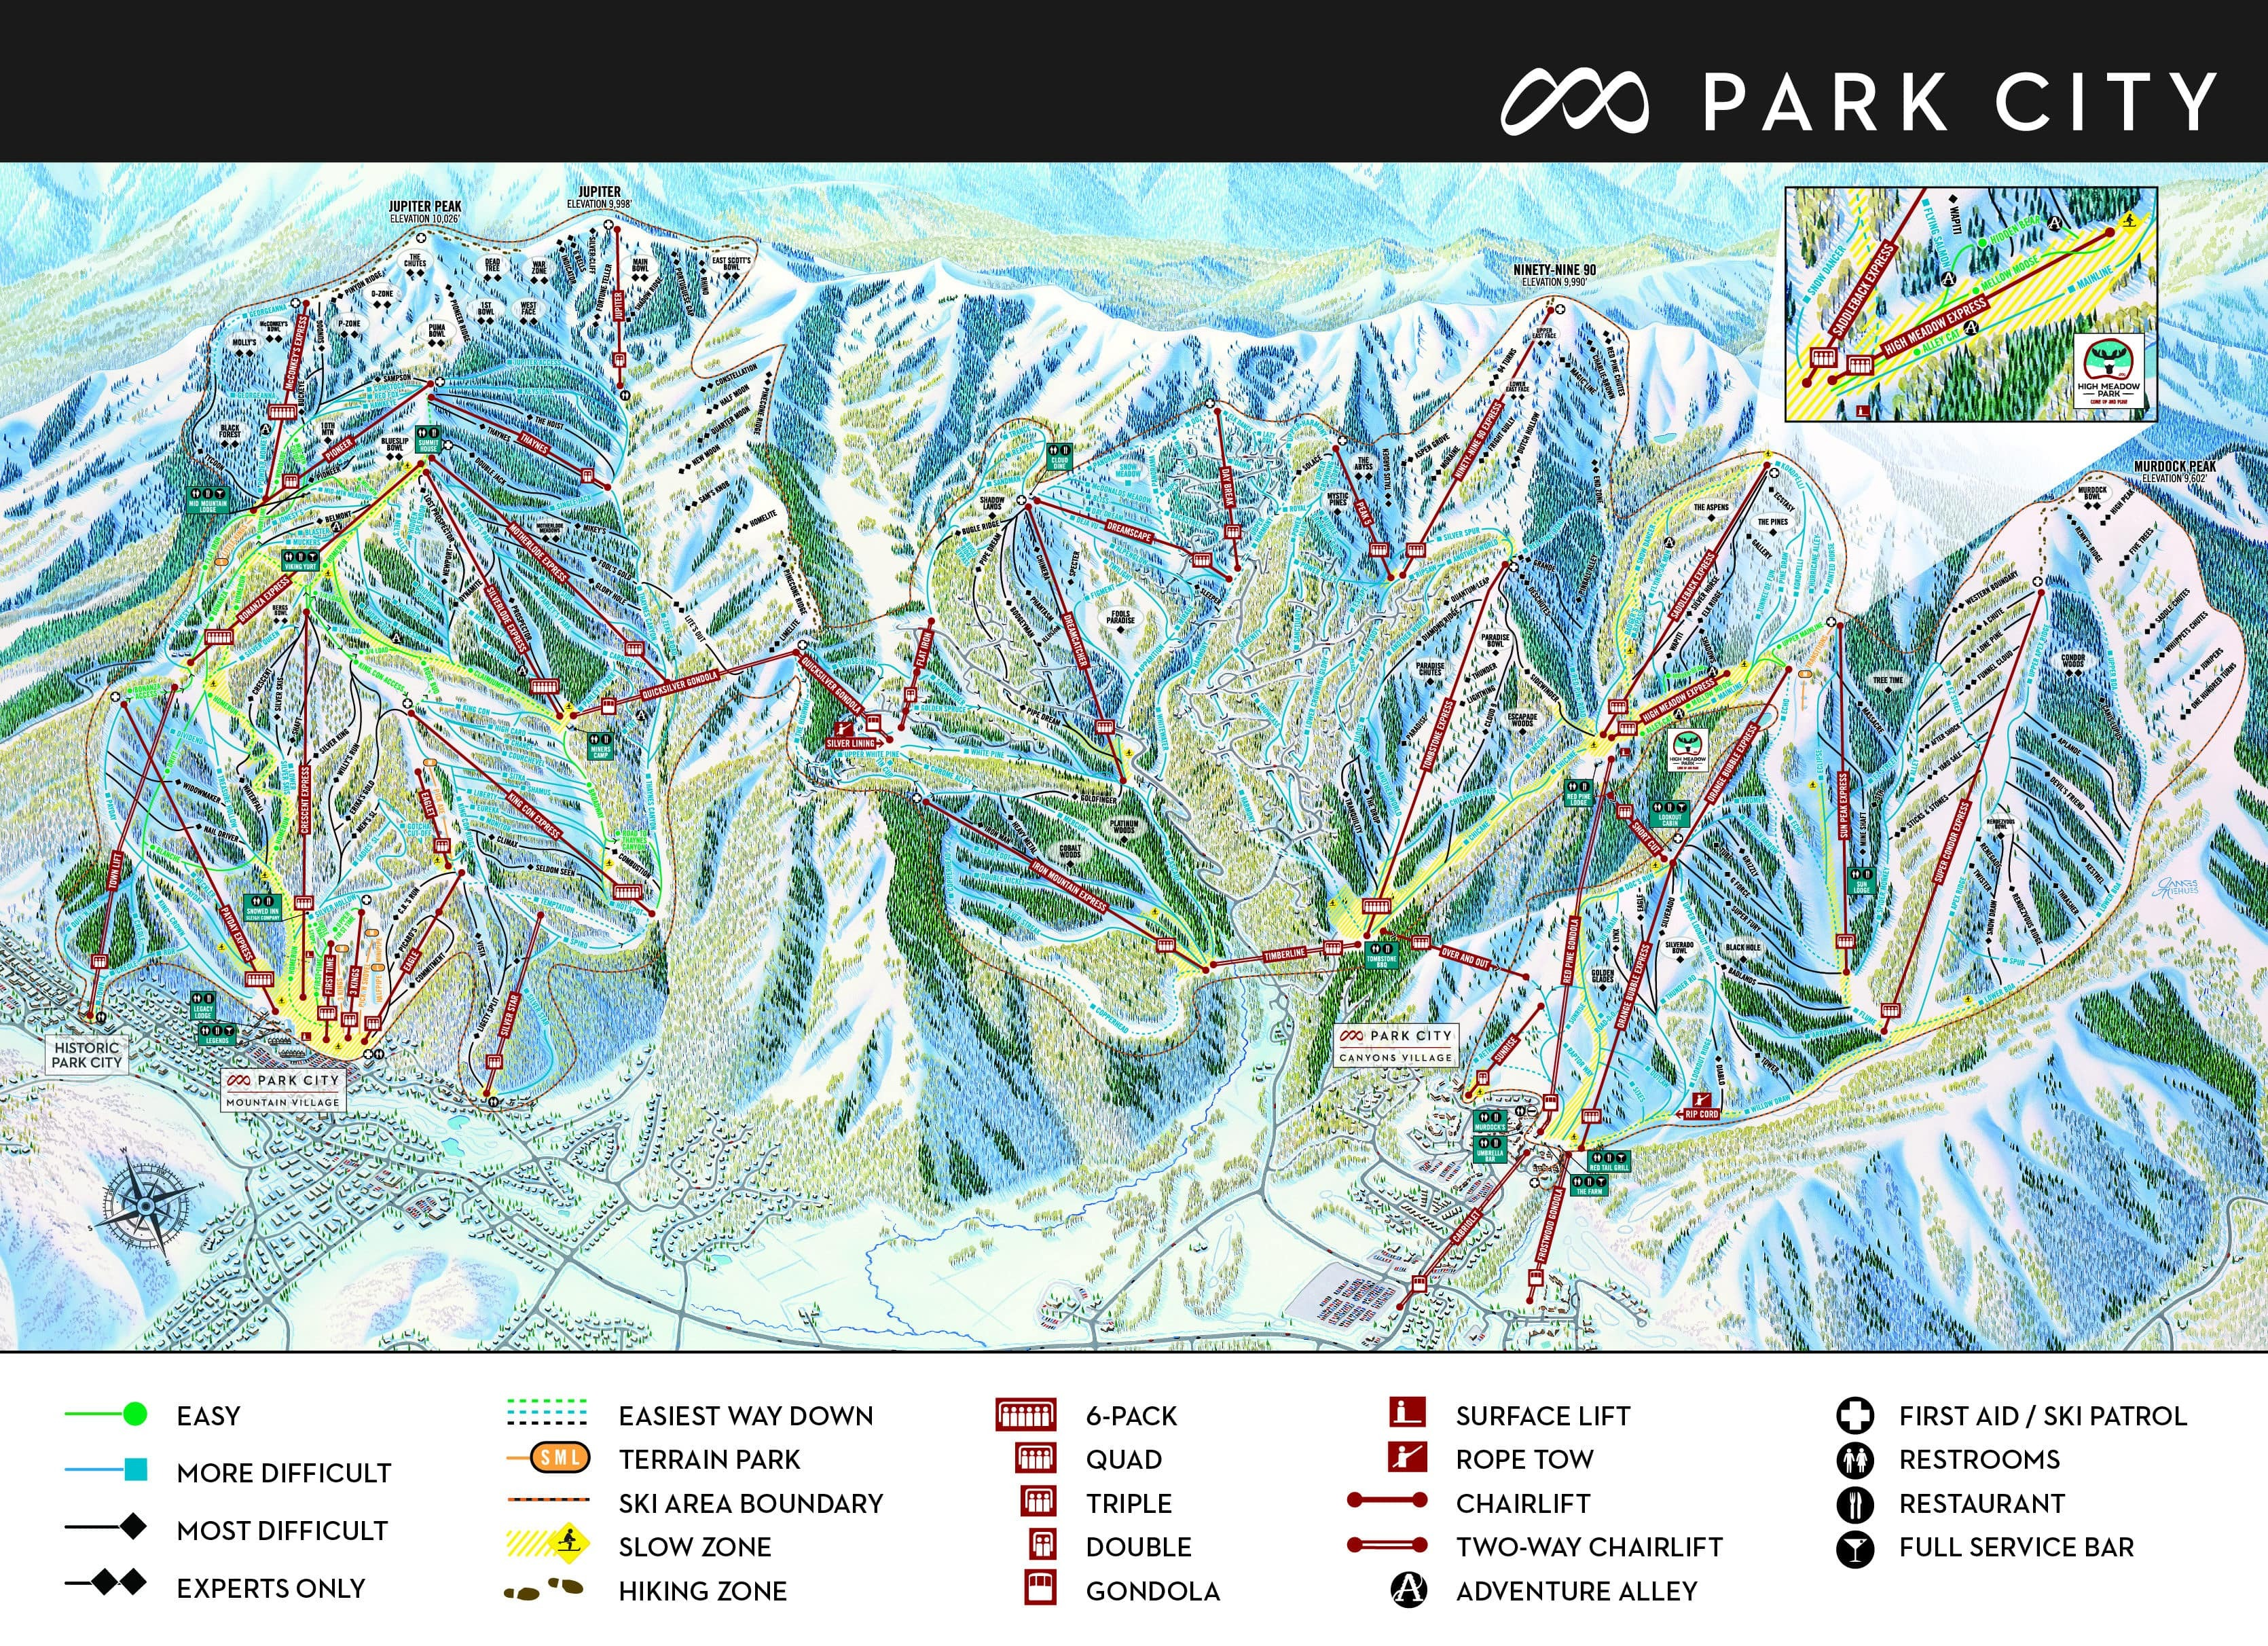 Park City Piste / Trail Map